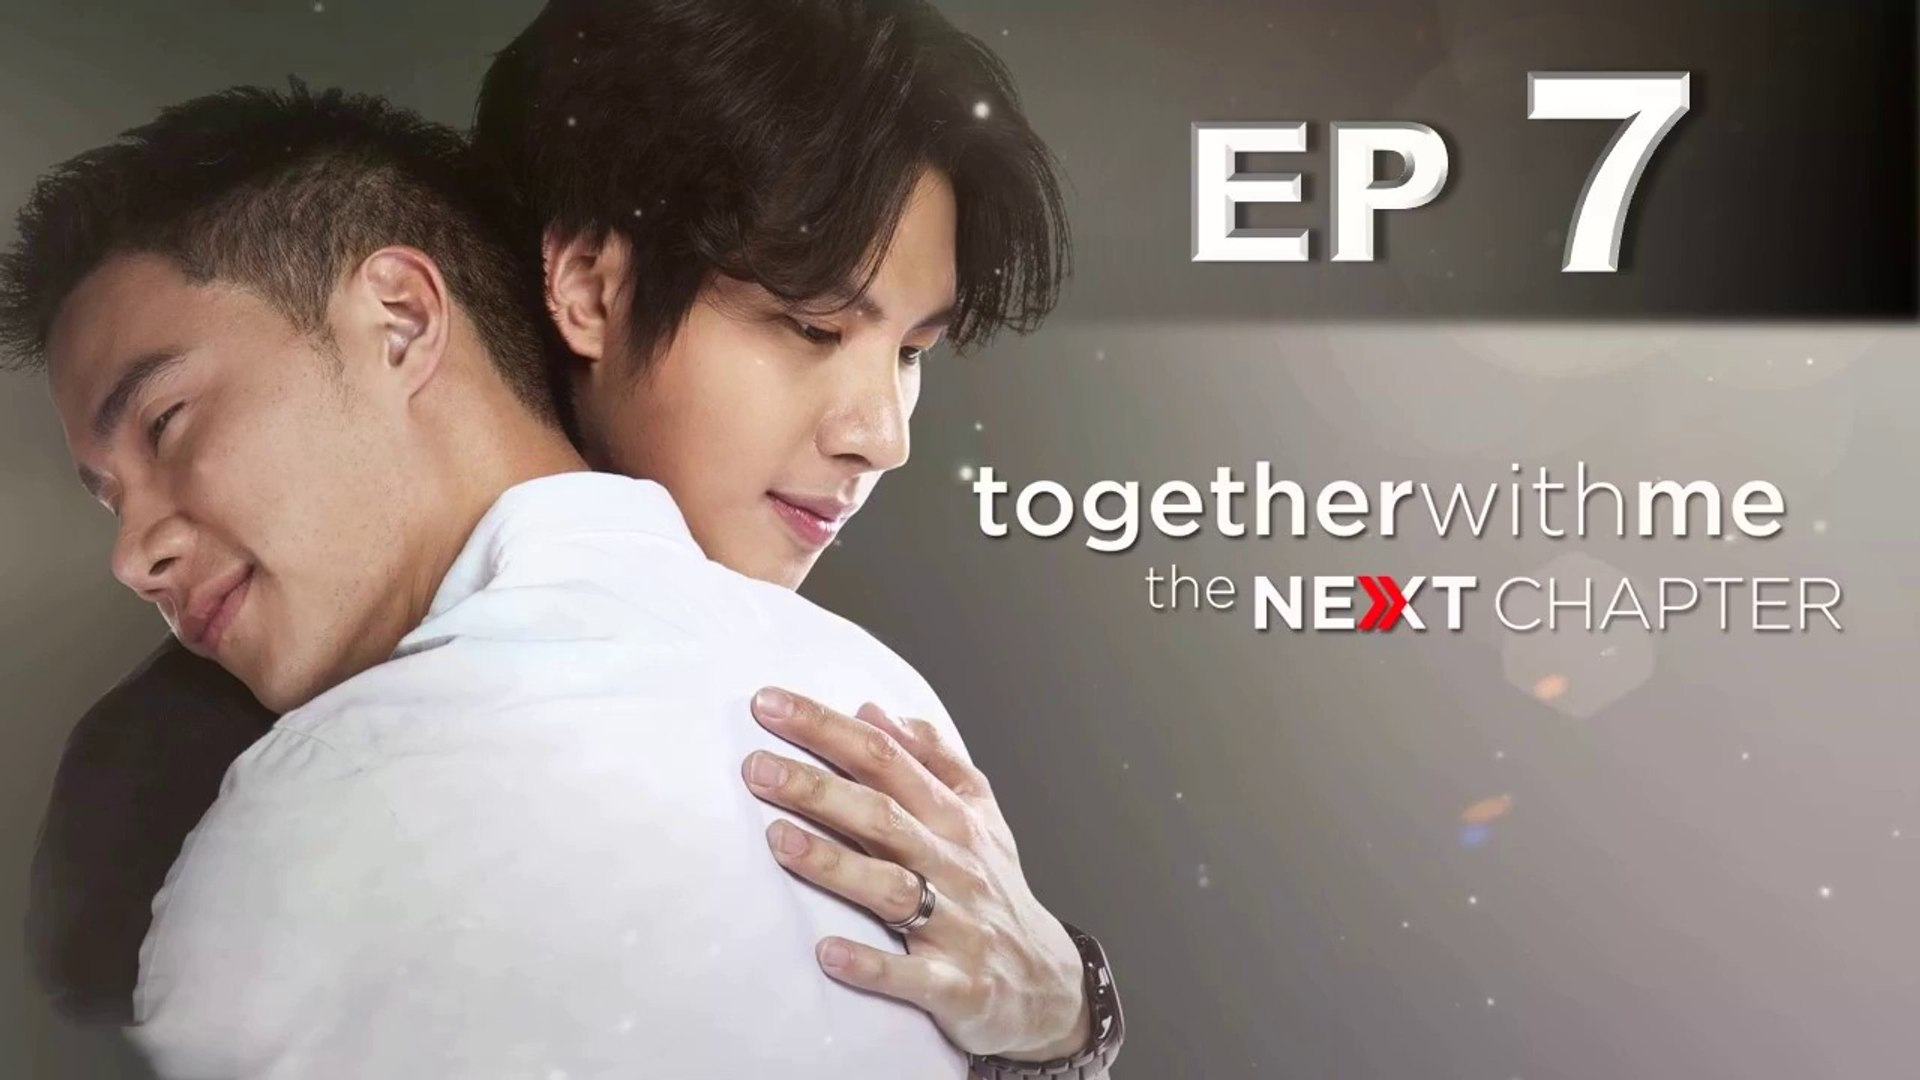 Together With Me, The Next Chapter EP 7 (7th Nov)